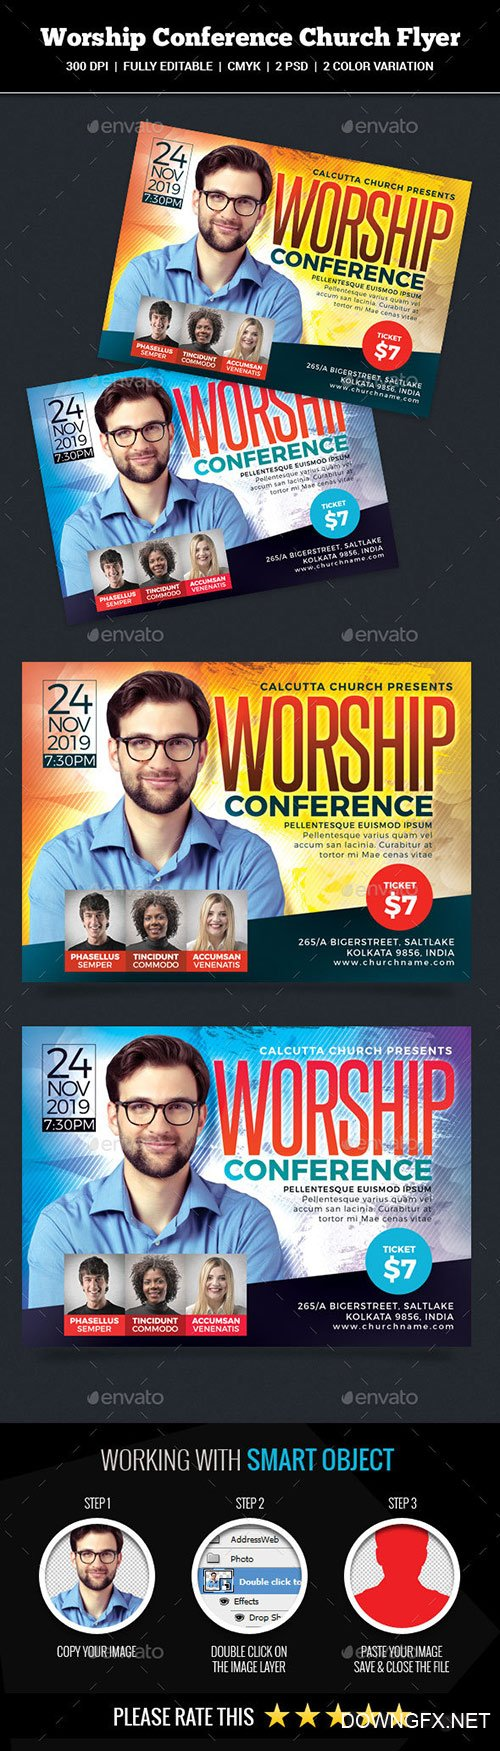 GraphicRiver - Worship Conference Church Flyer 22337102